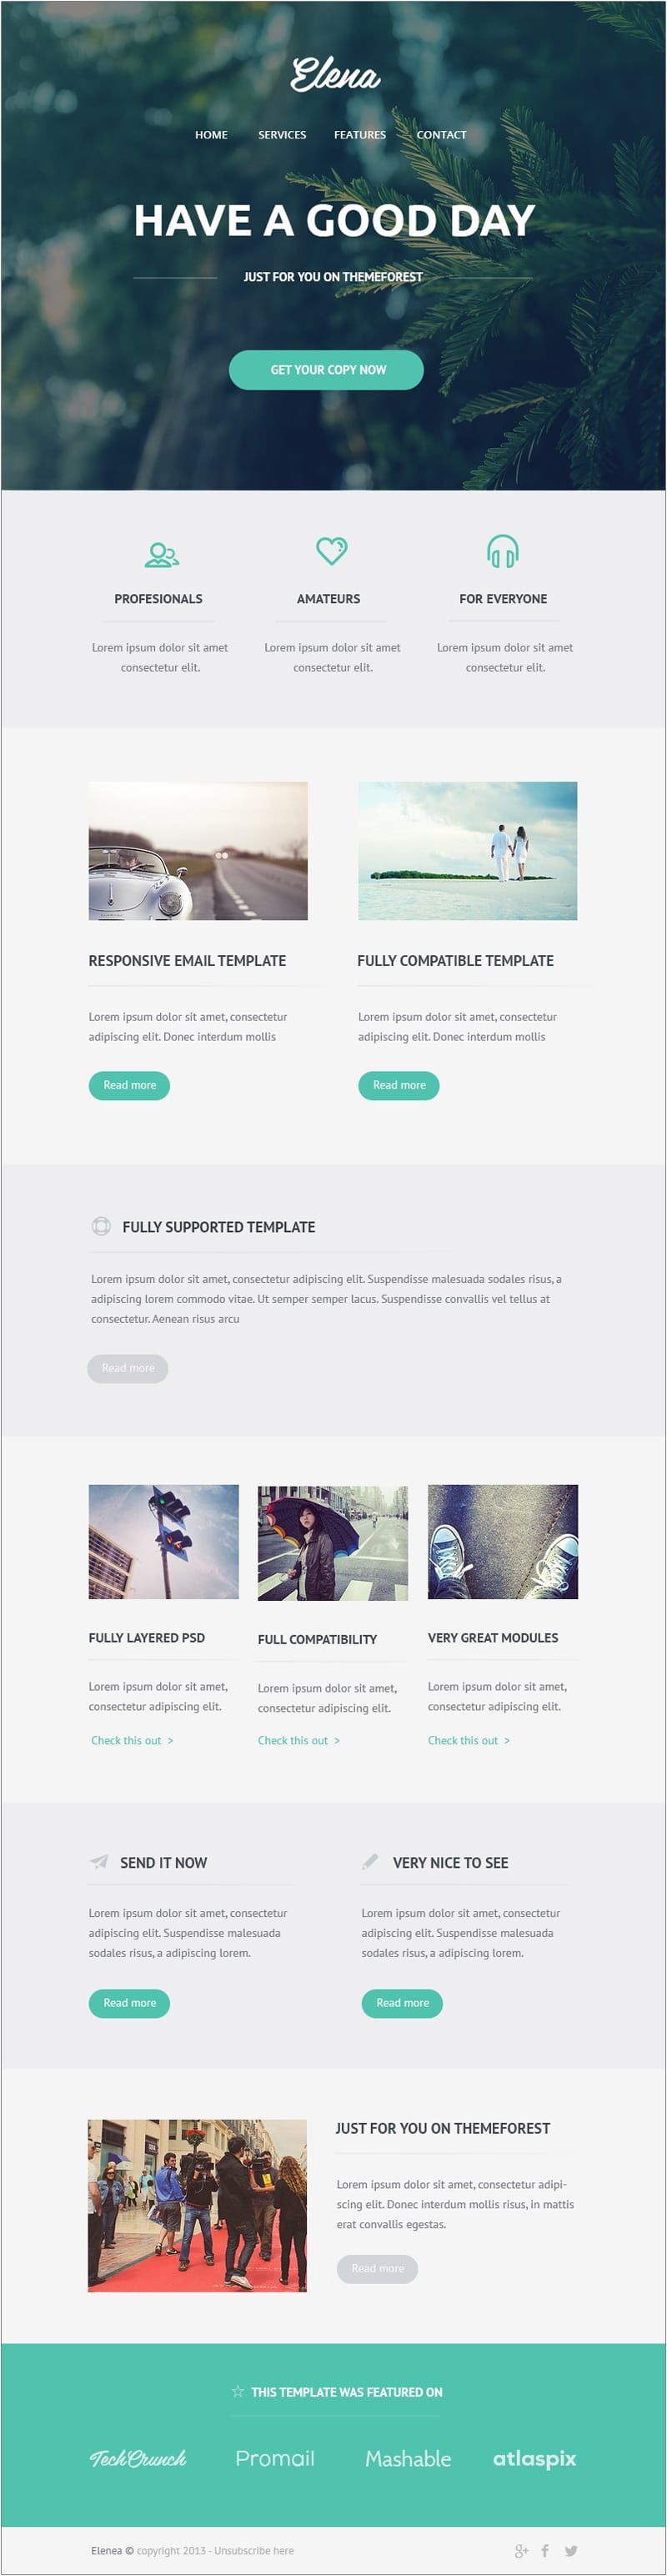 Free email newsletter templates psd css author for Designing an email template